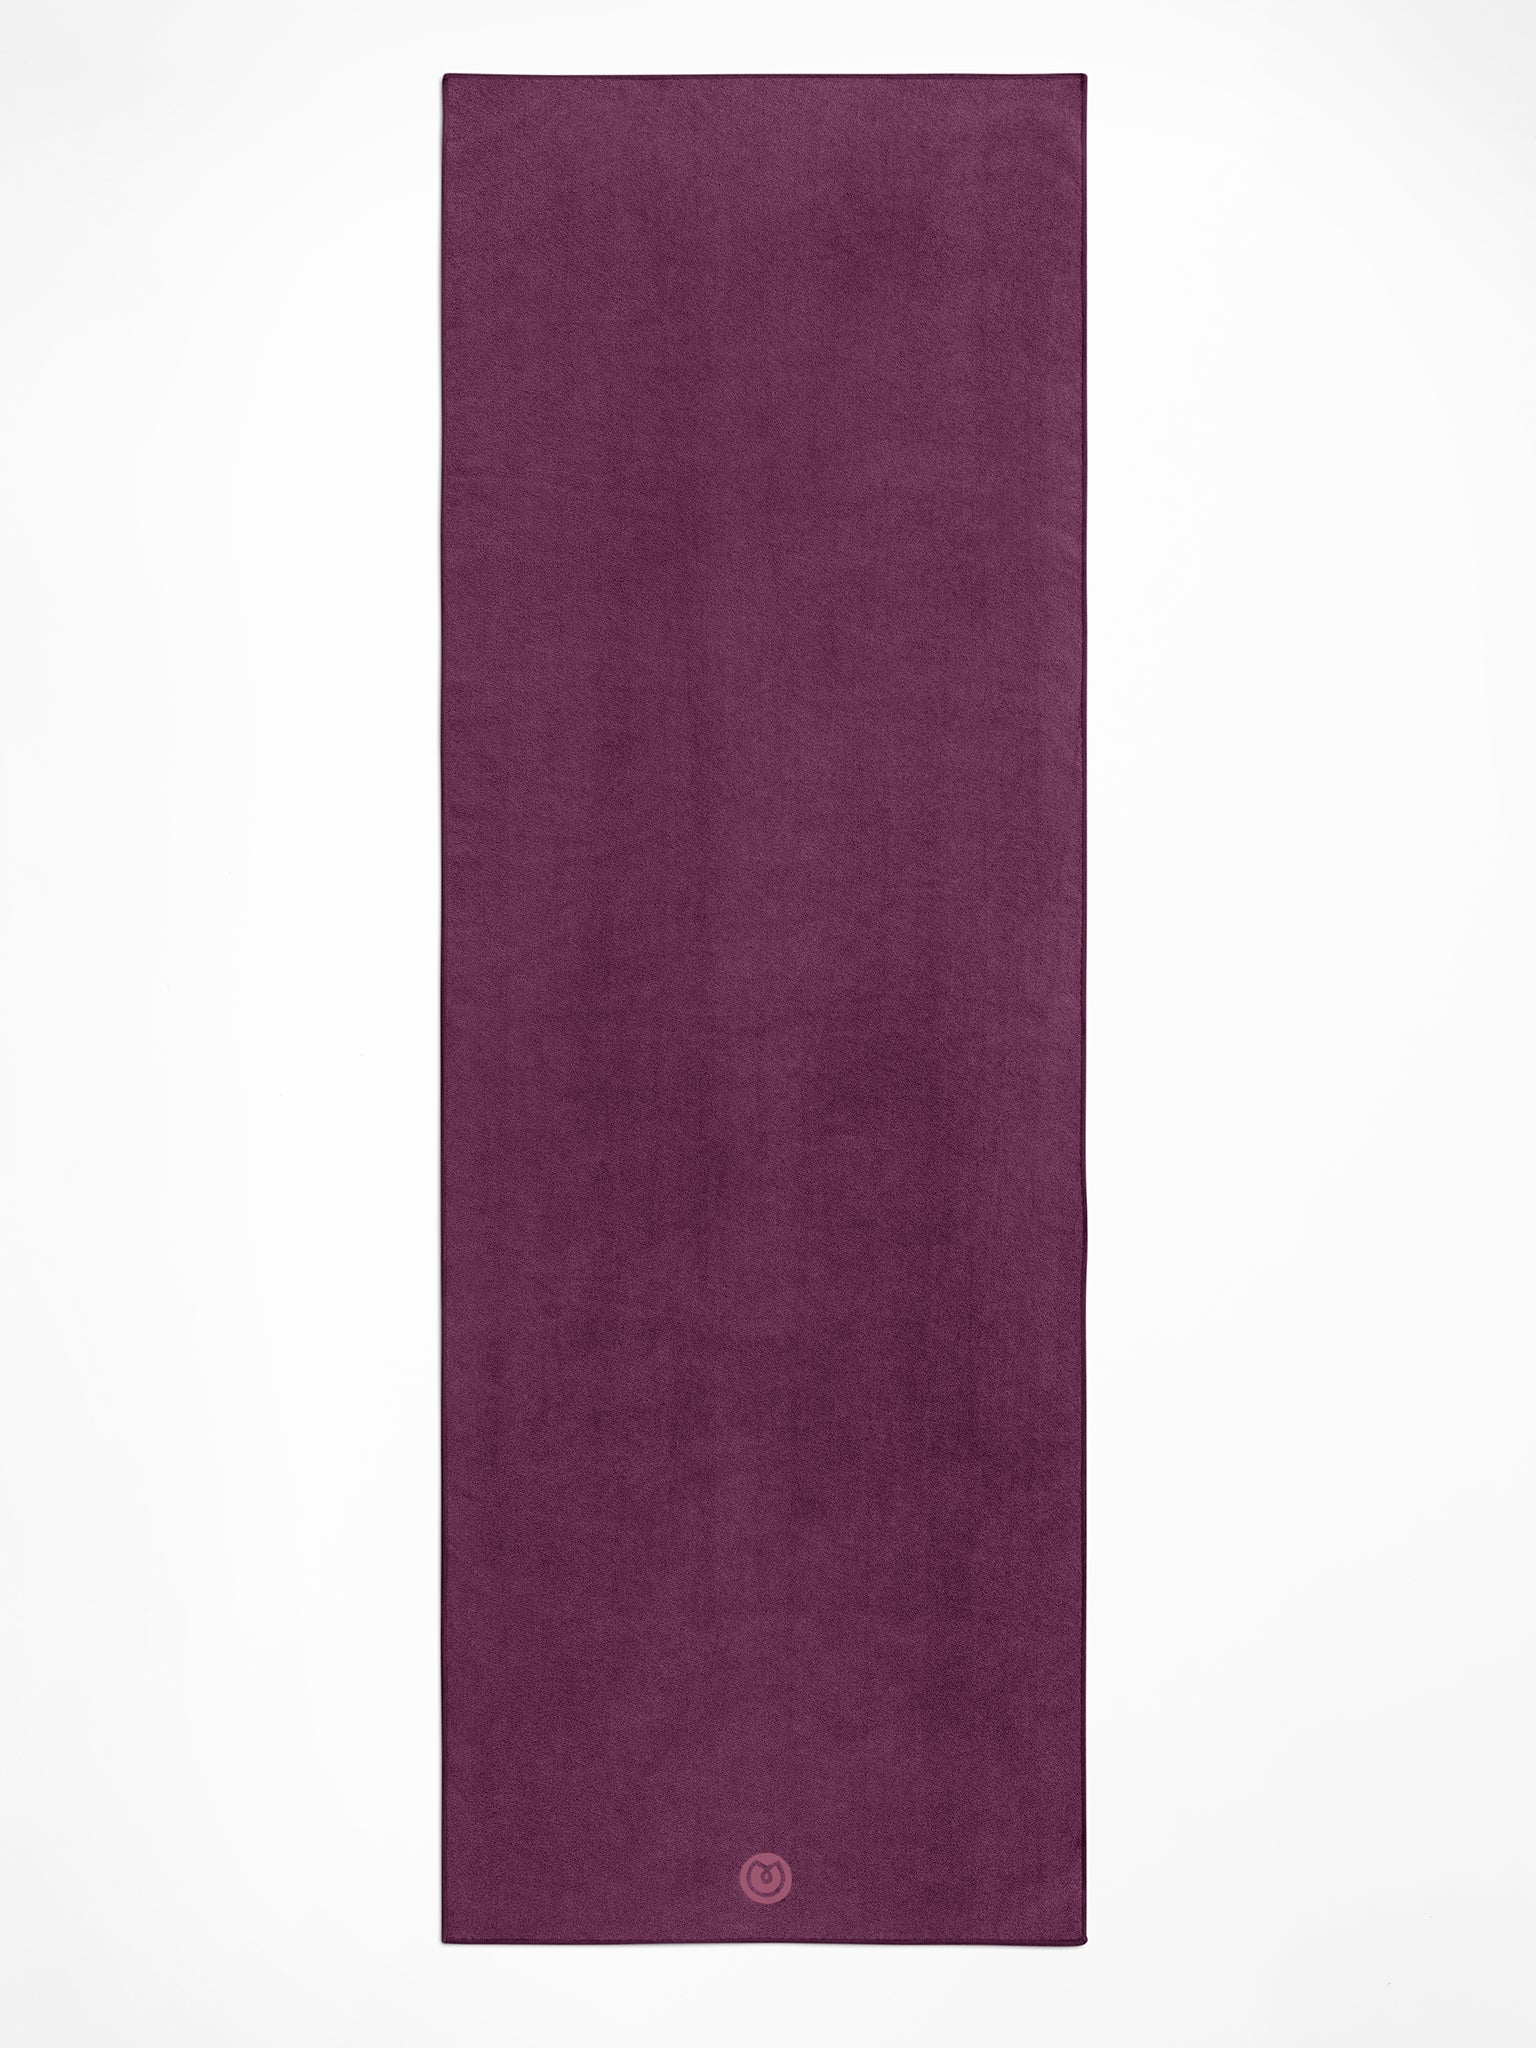 Yogamatters The Grippy Yoga Mat Towel